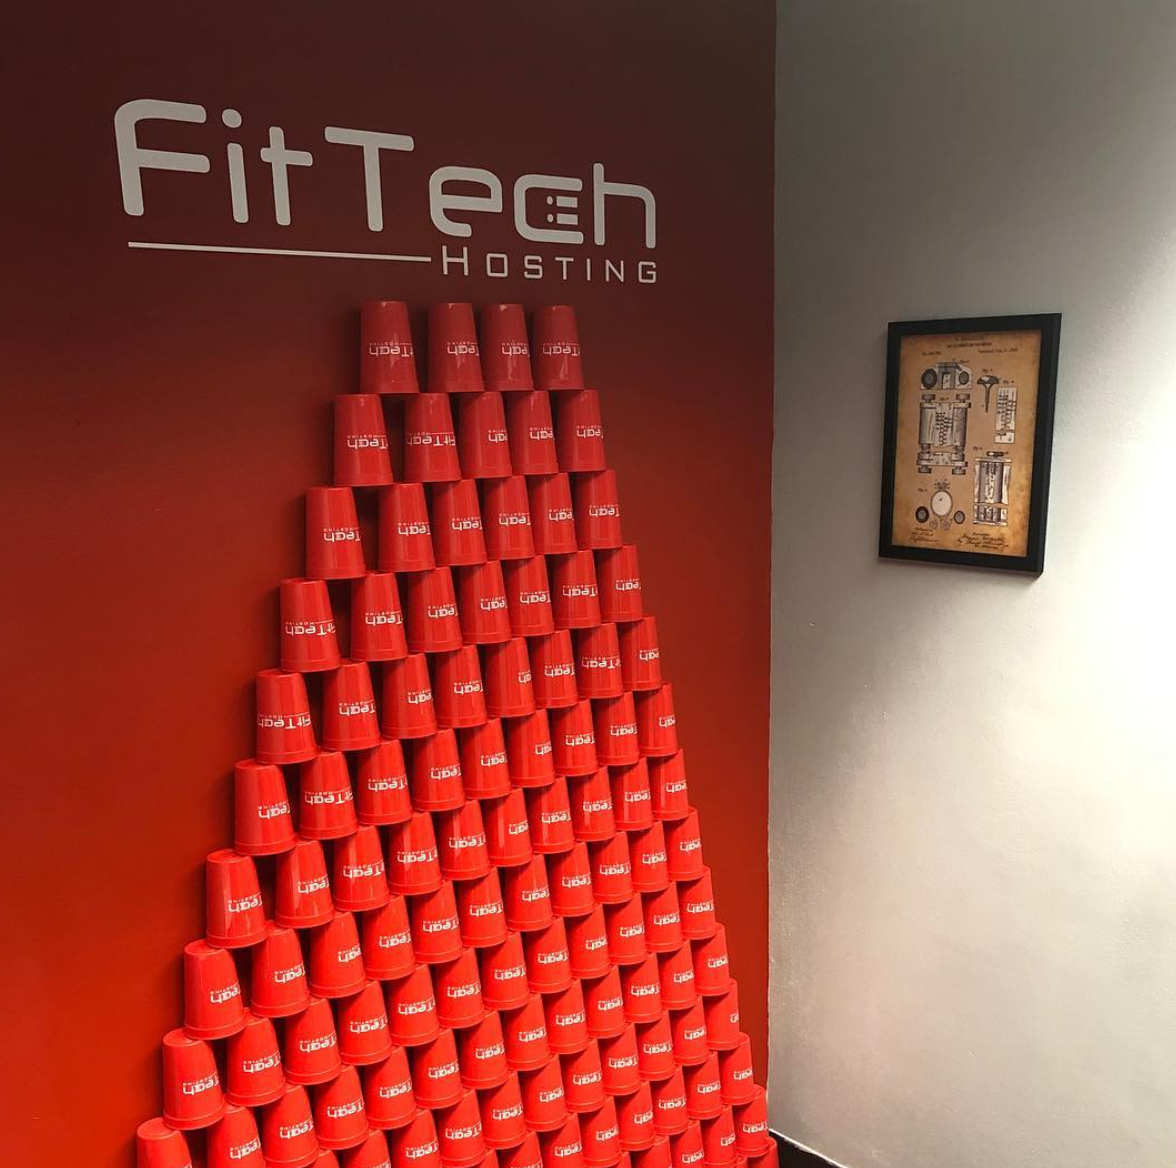 FitTech Hosting Branded Stadium Cups stacked against wall